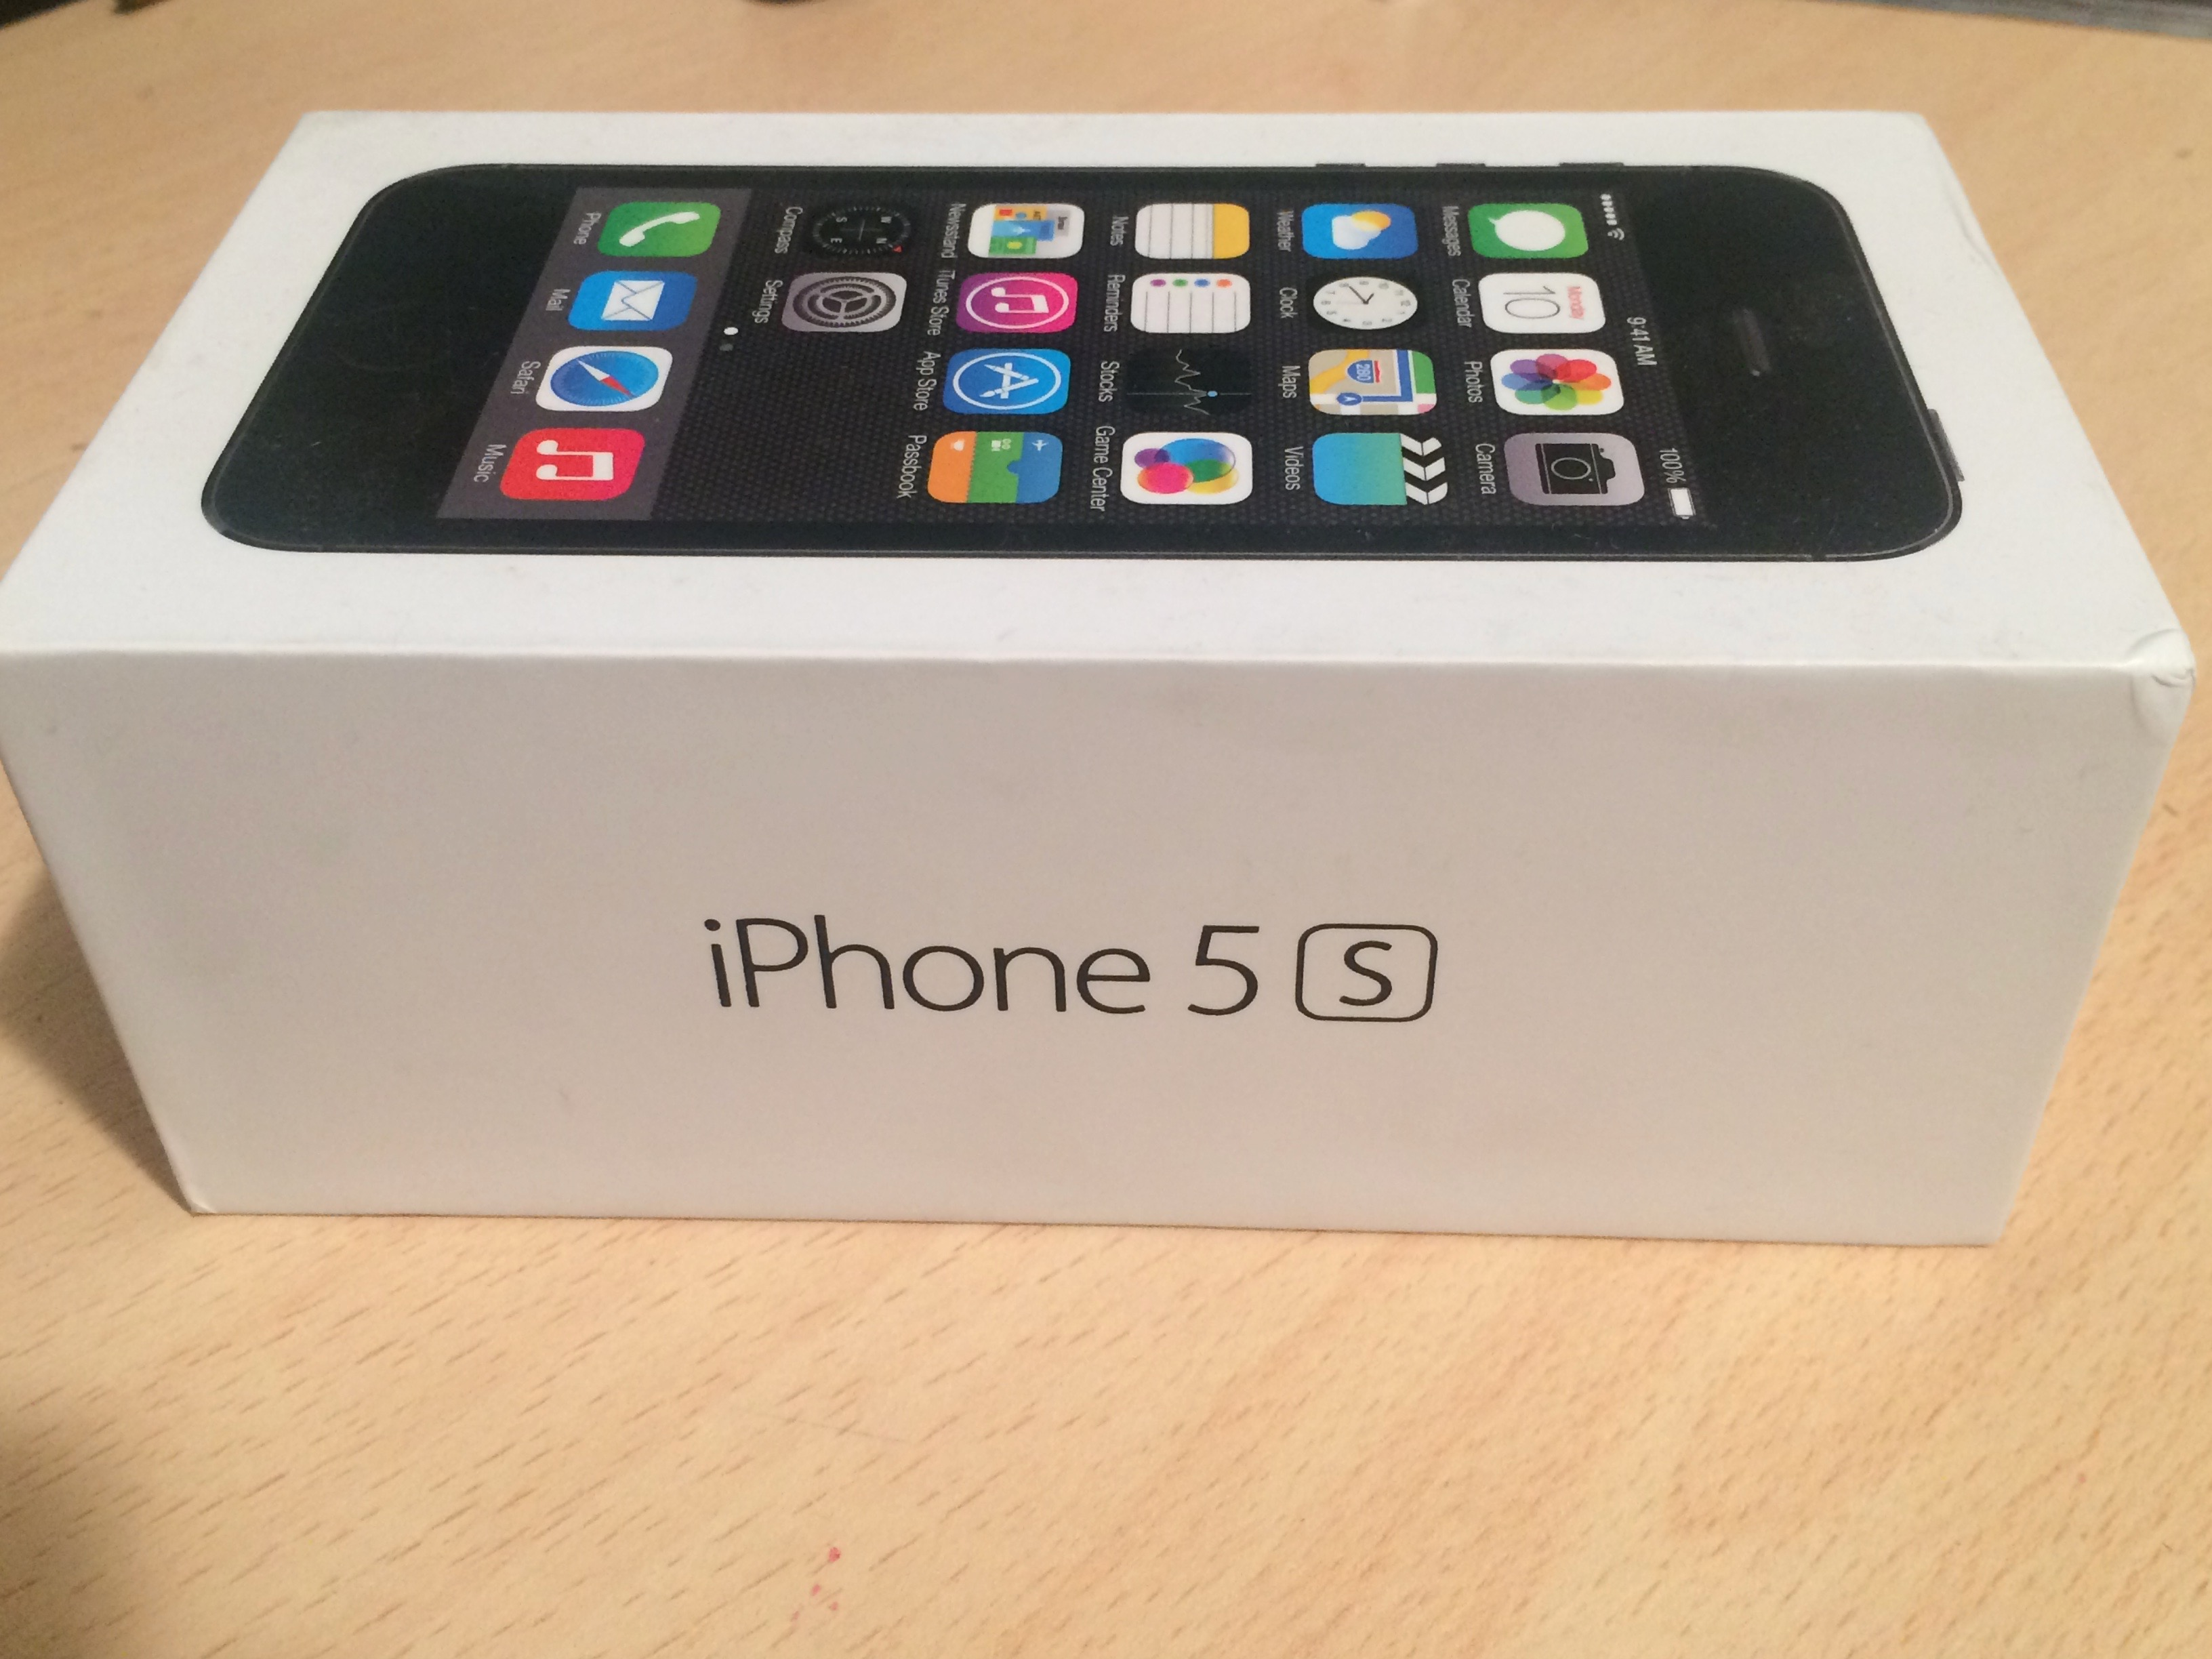 Comprar Iphone 5 32gb Libre Venta Iphone 5s 32gb Negro Libre De Fabrica Impecable